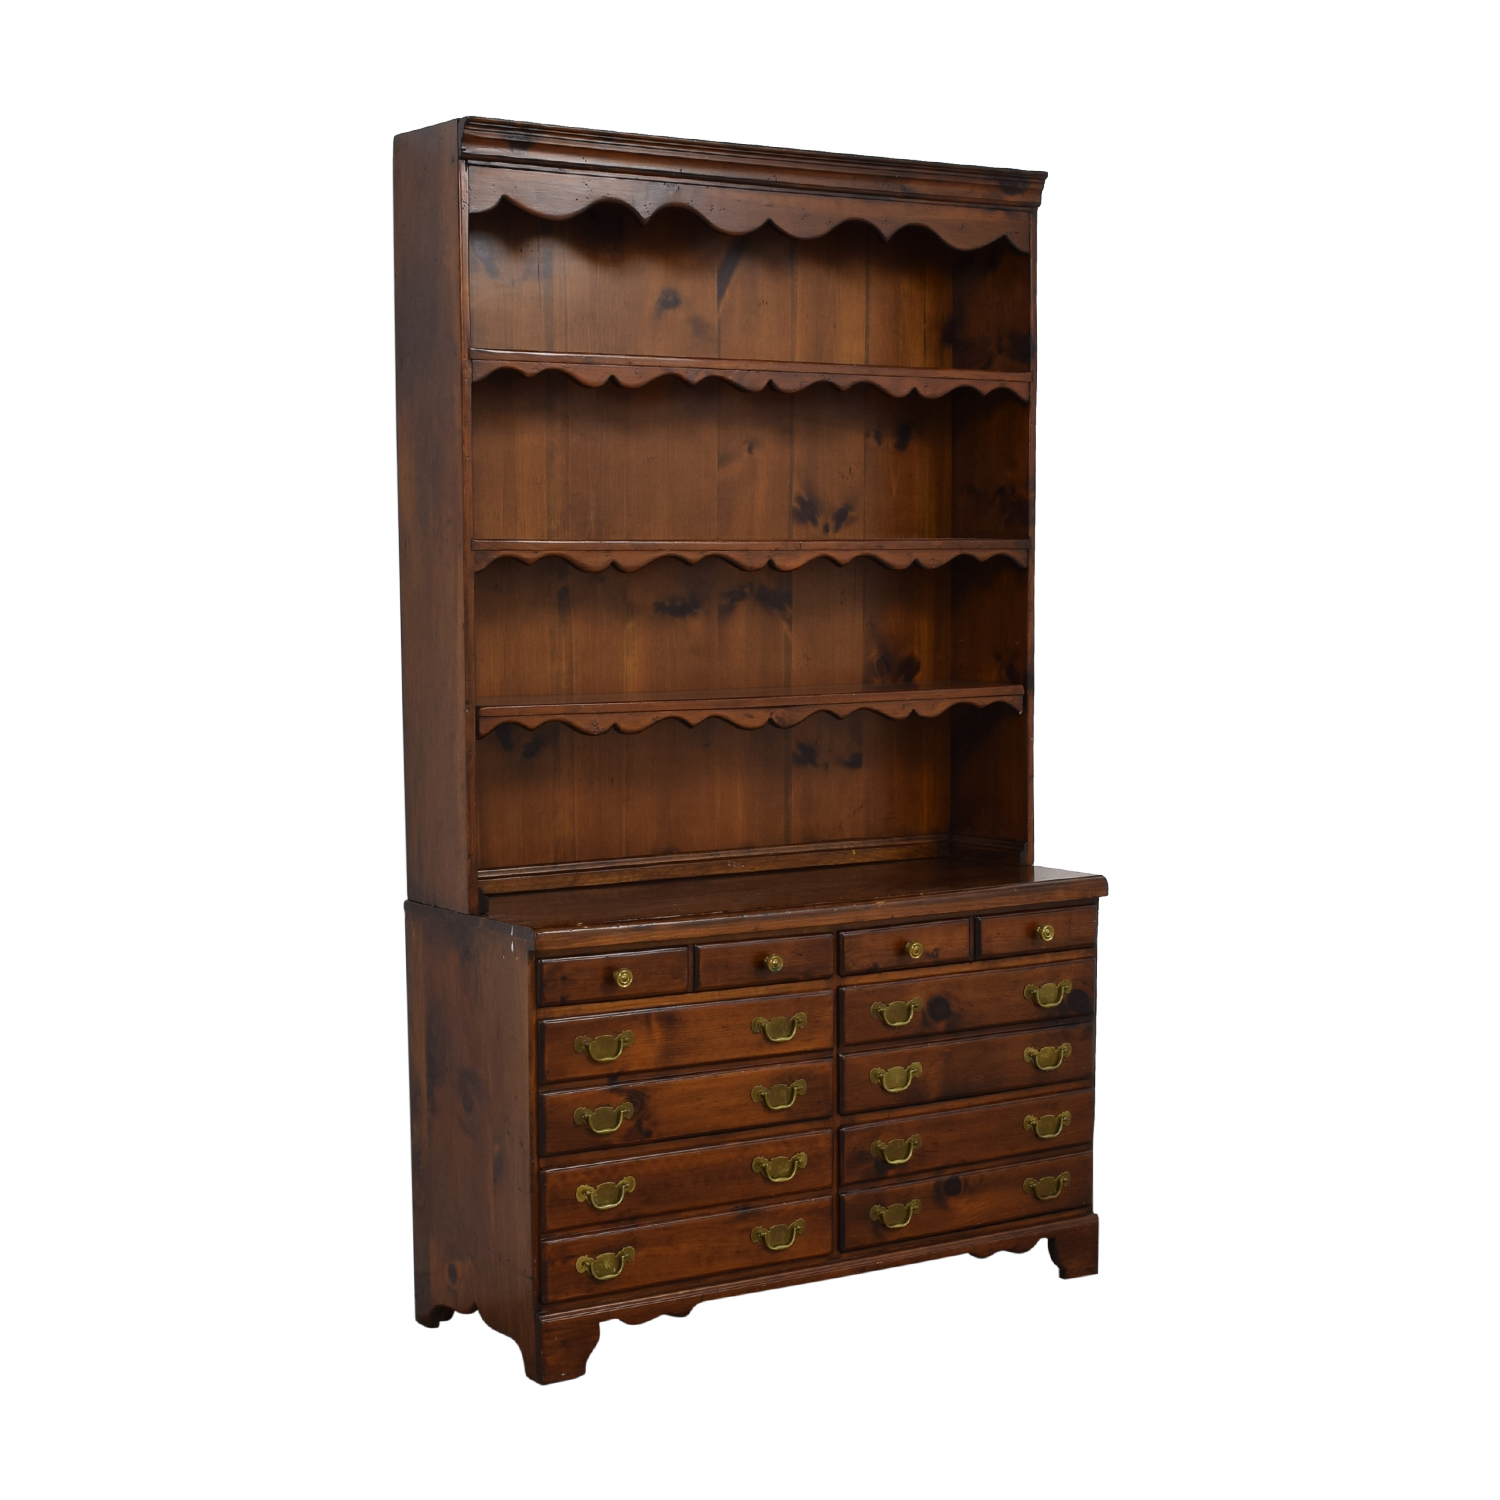 Wood Twelve-Drawer Dovetailed Sideboard with Hutch for sale